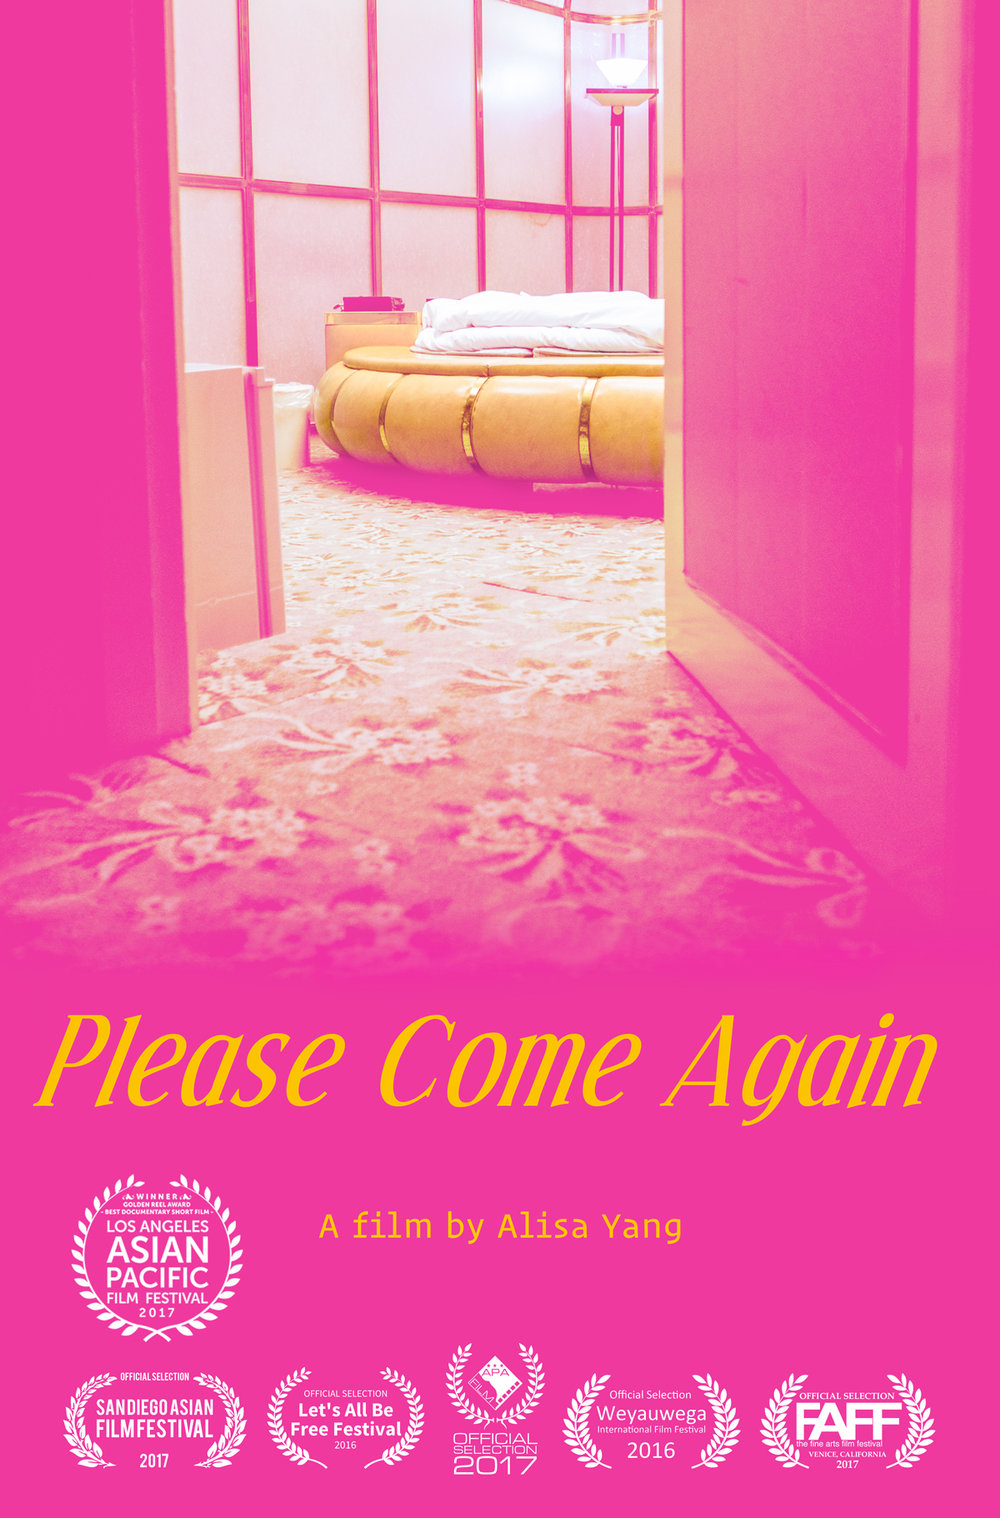 Please Come Again film poster 2017